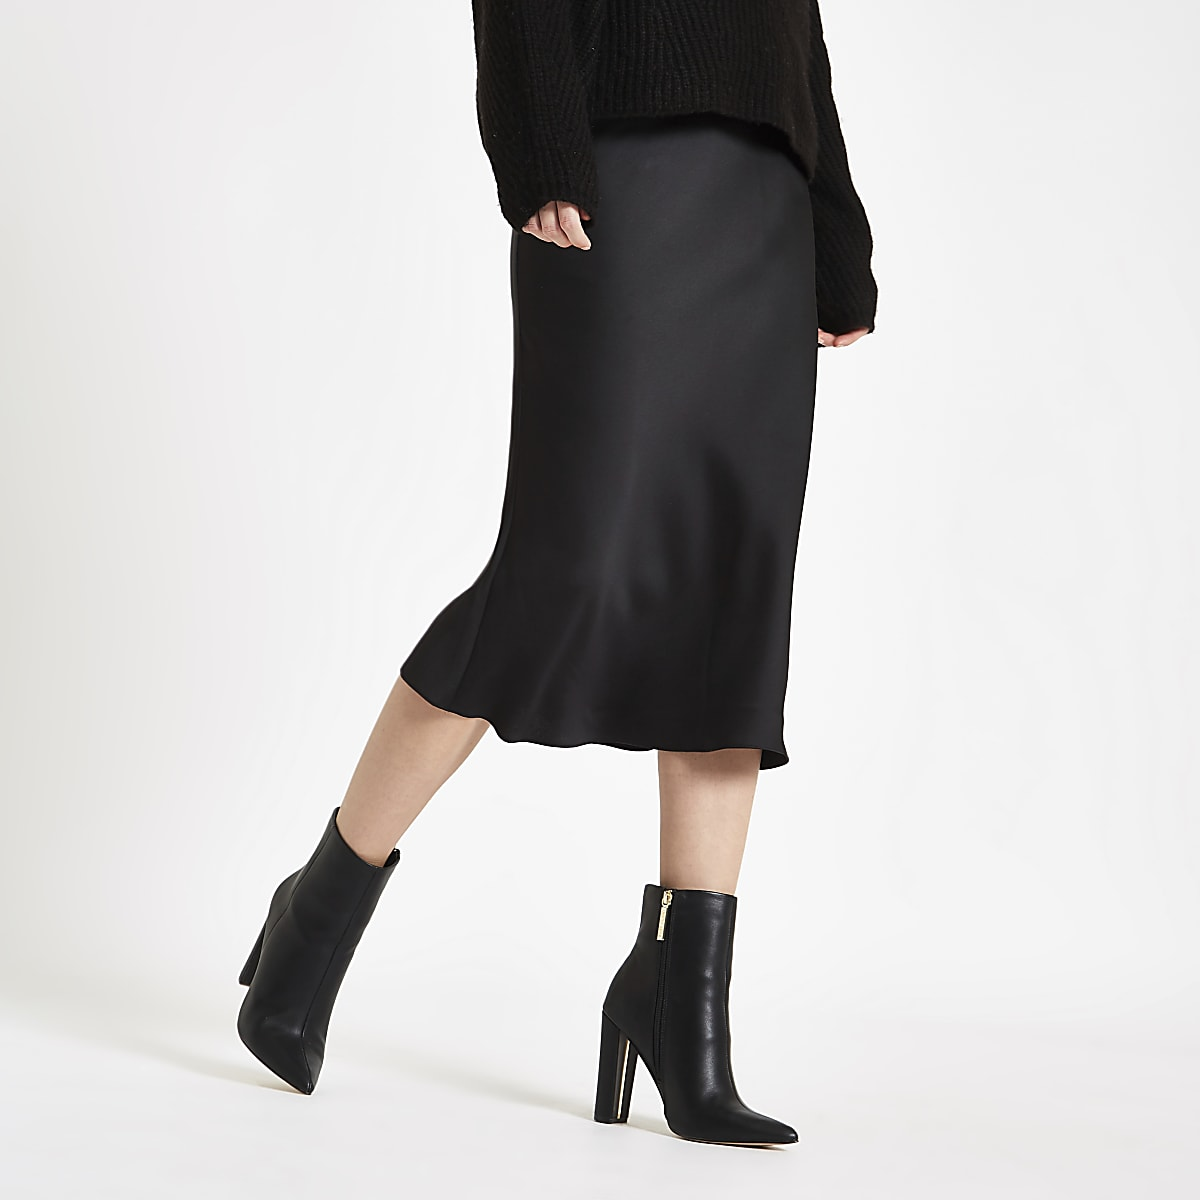 3c7586624d Black bias cut midi skirt - Midi Skirts - Skirts - women